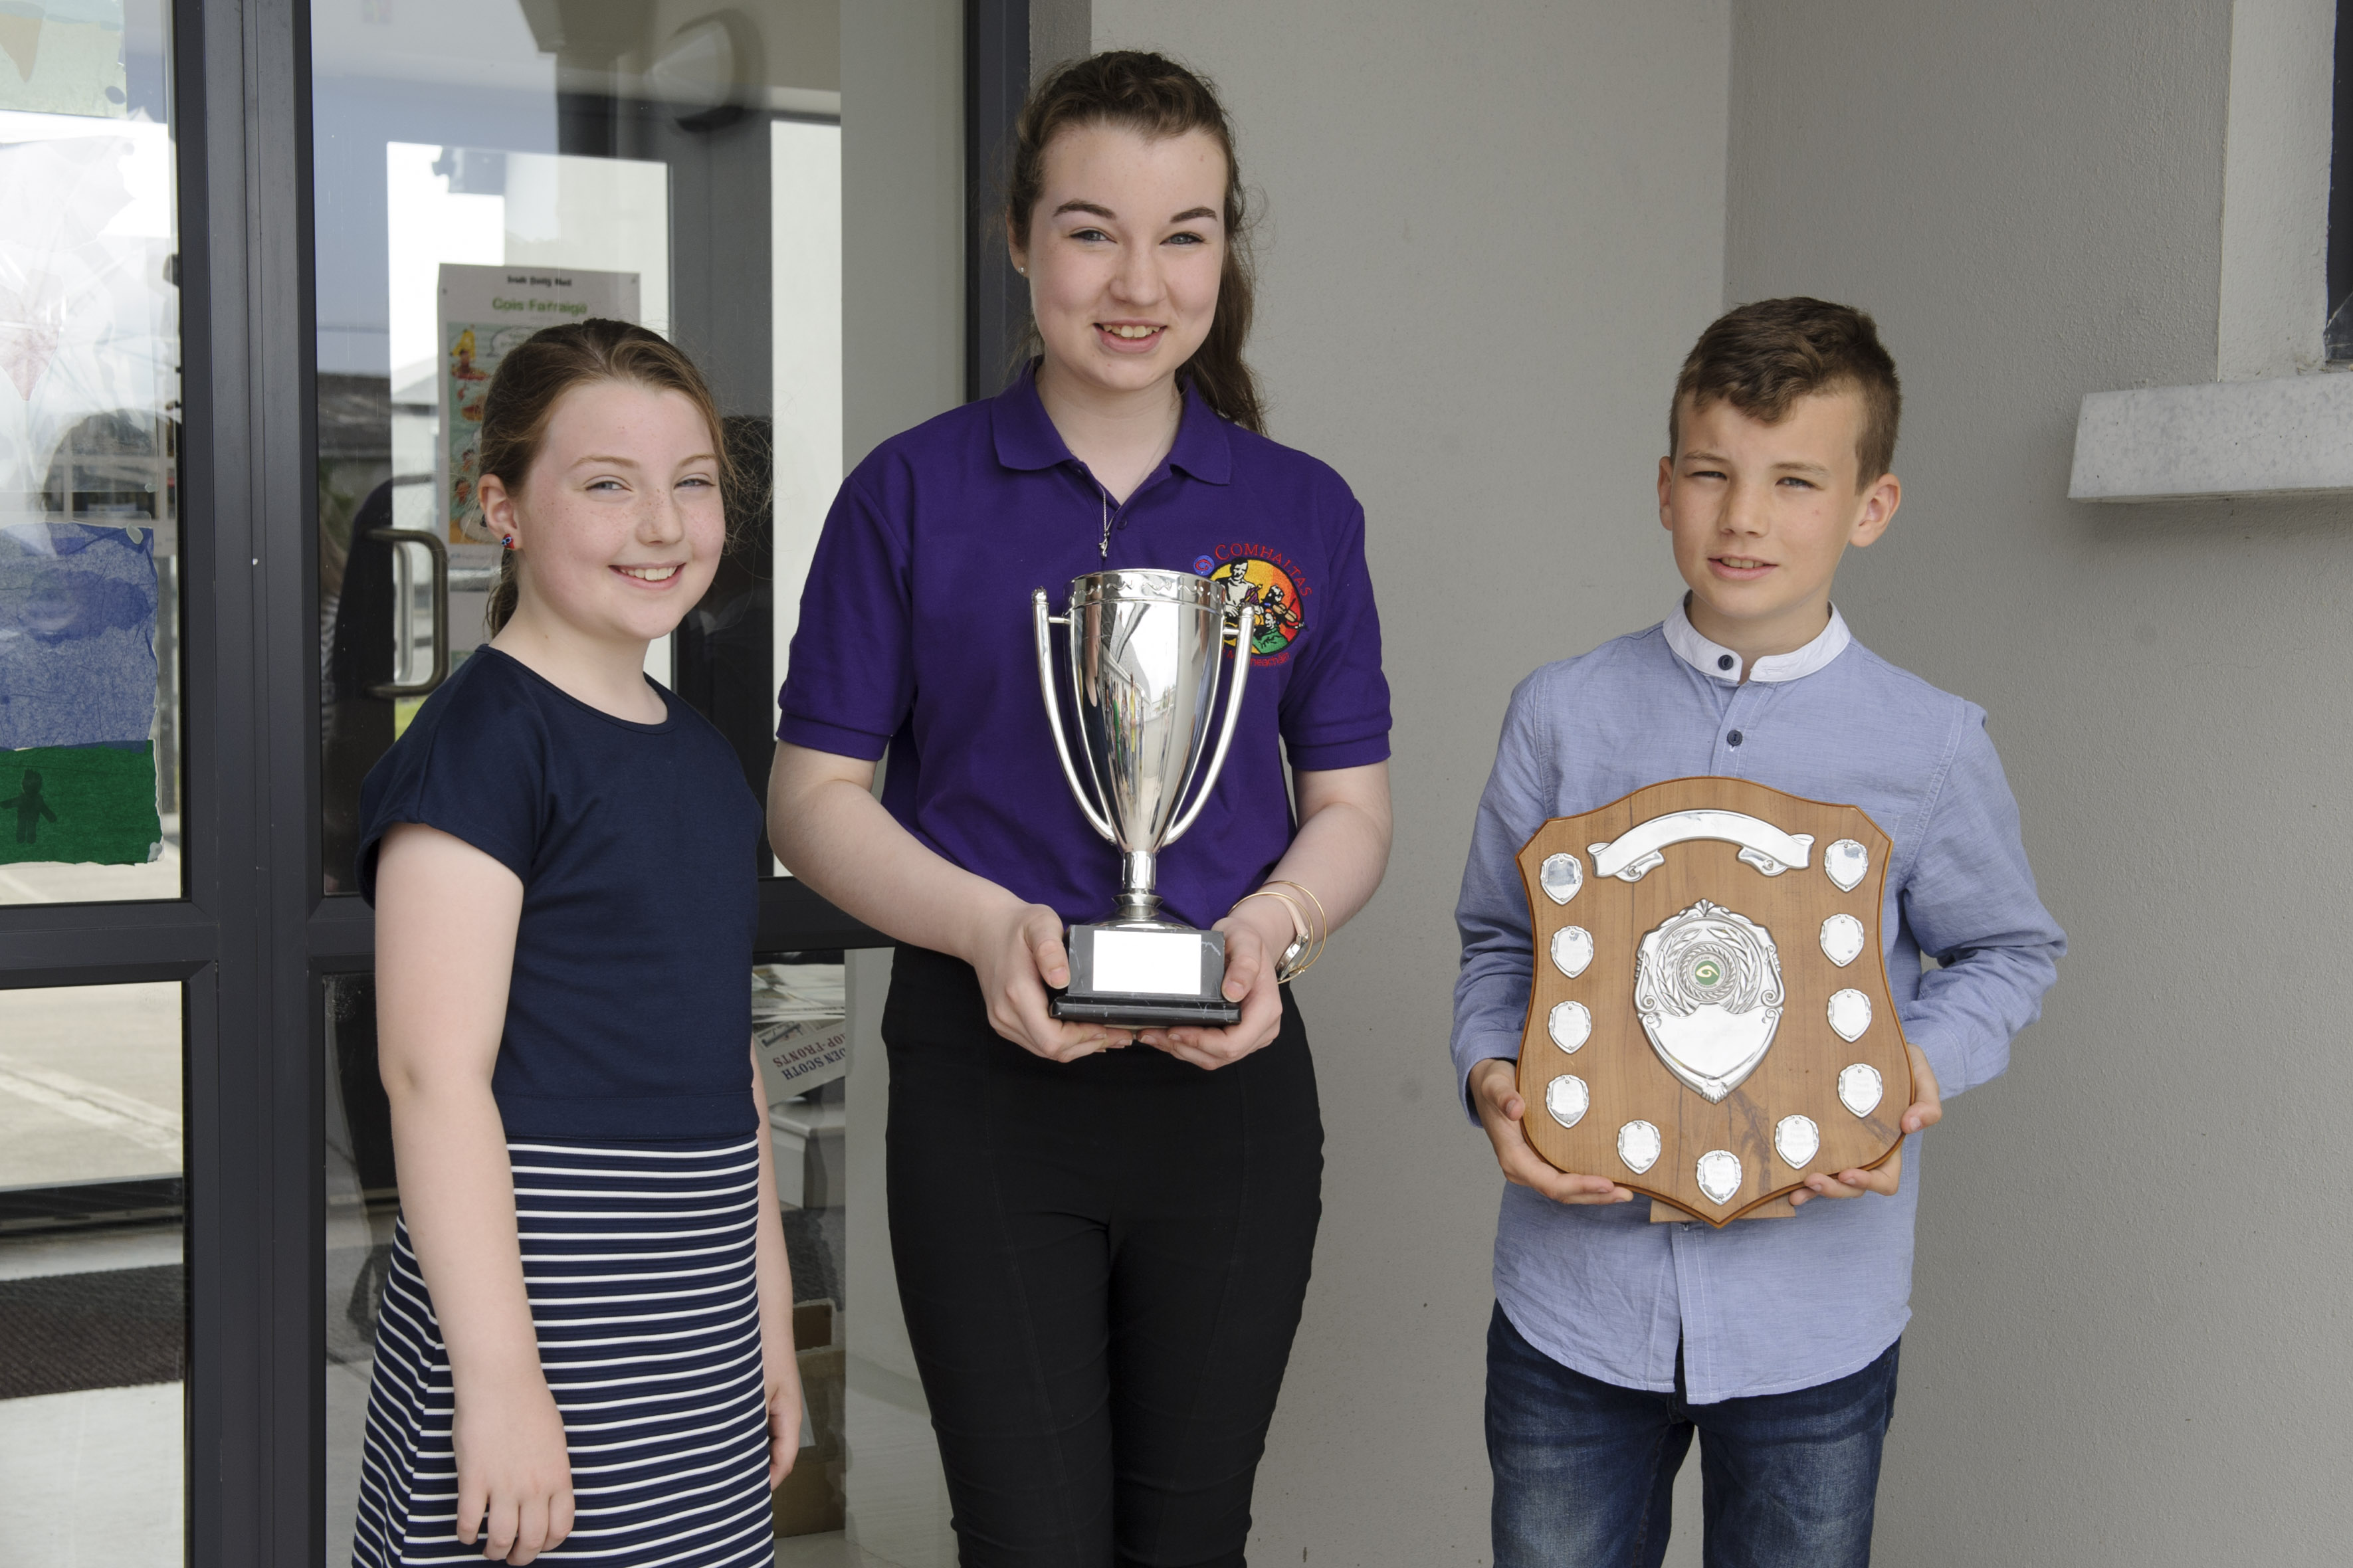 Pictured are Ciara, Aisling and Dairmuid O'Riordan, who all received awards. Ciara won the U-9 Comhra na nGaelige, Aisling, won the U-15 Flute Dance Tune and Slow Air and Dairmuid won the U-12 Accompaniment. ©Rory Geary/The Northern Standard